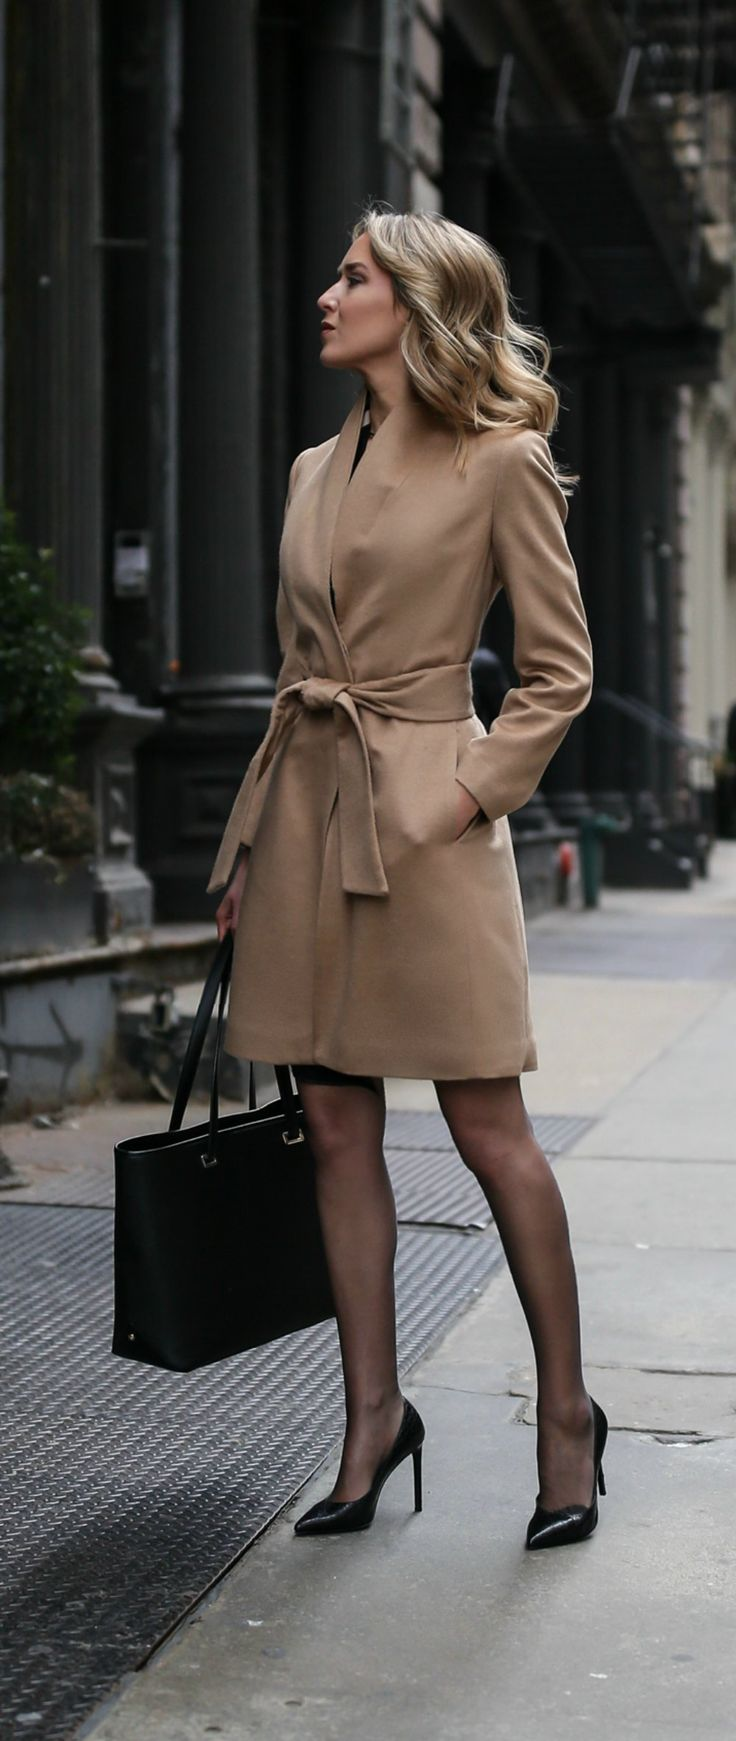 25 Best Ideas About Camel Coat On Pinterest Long Winter Coats Work Chic And Camel Autumn Dresses